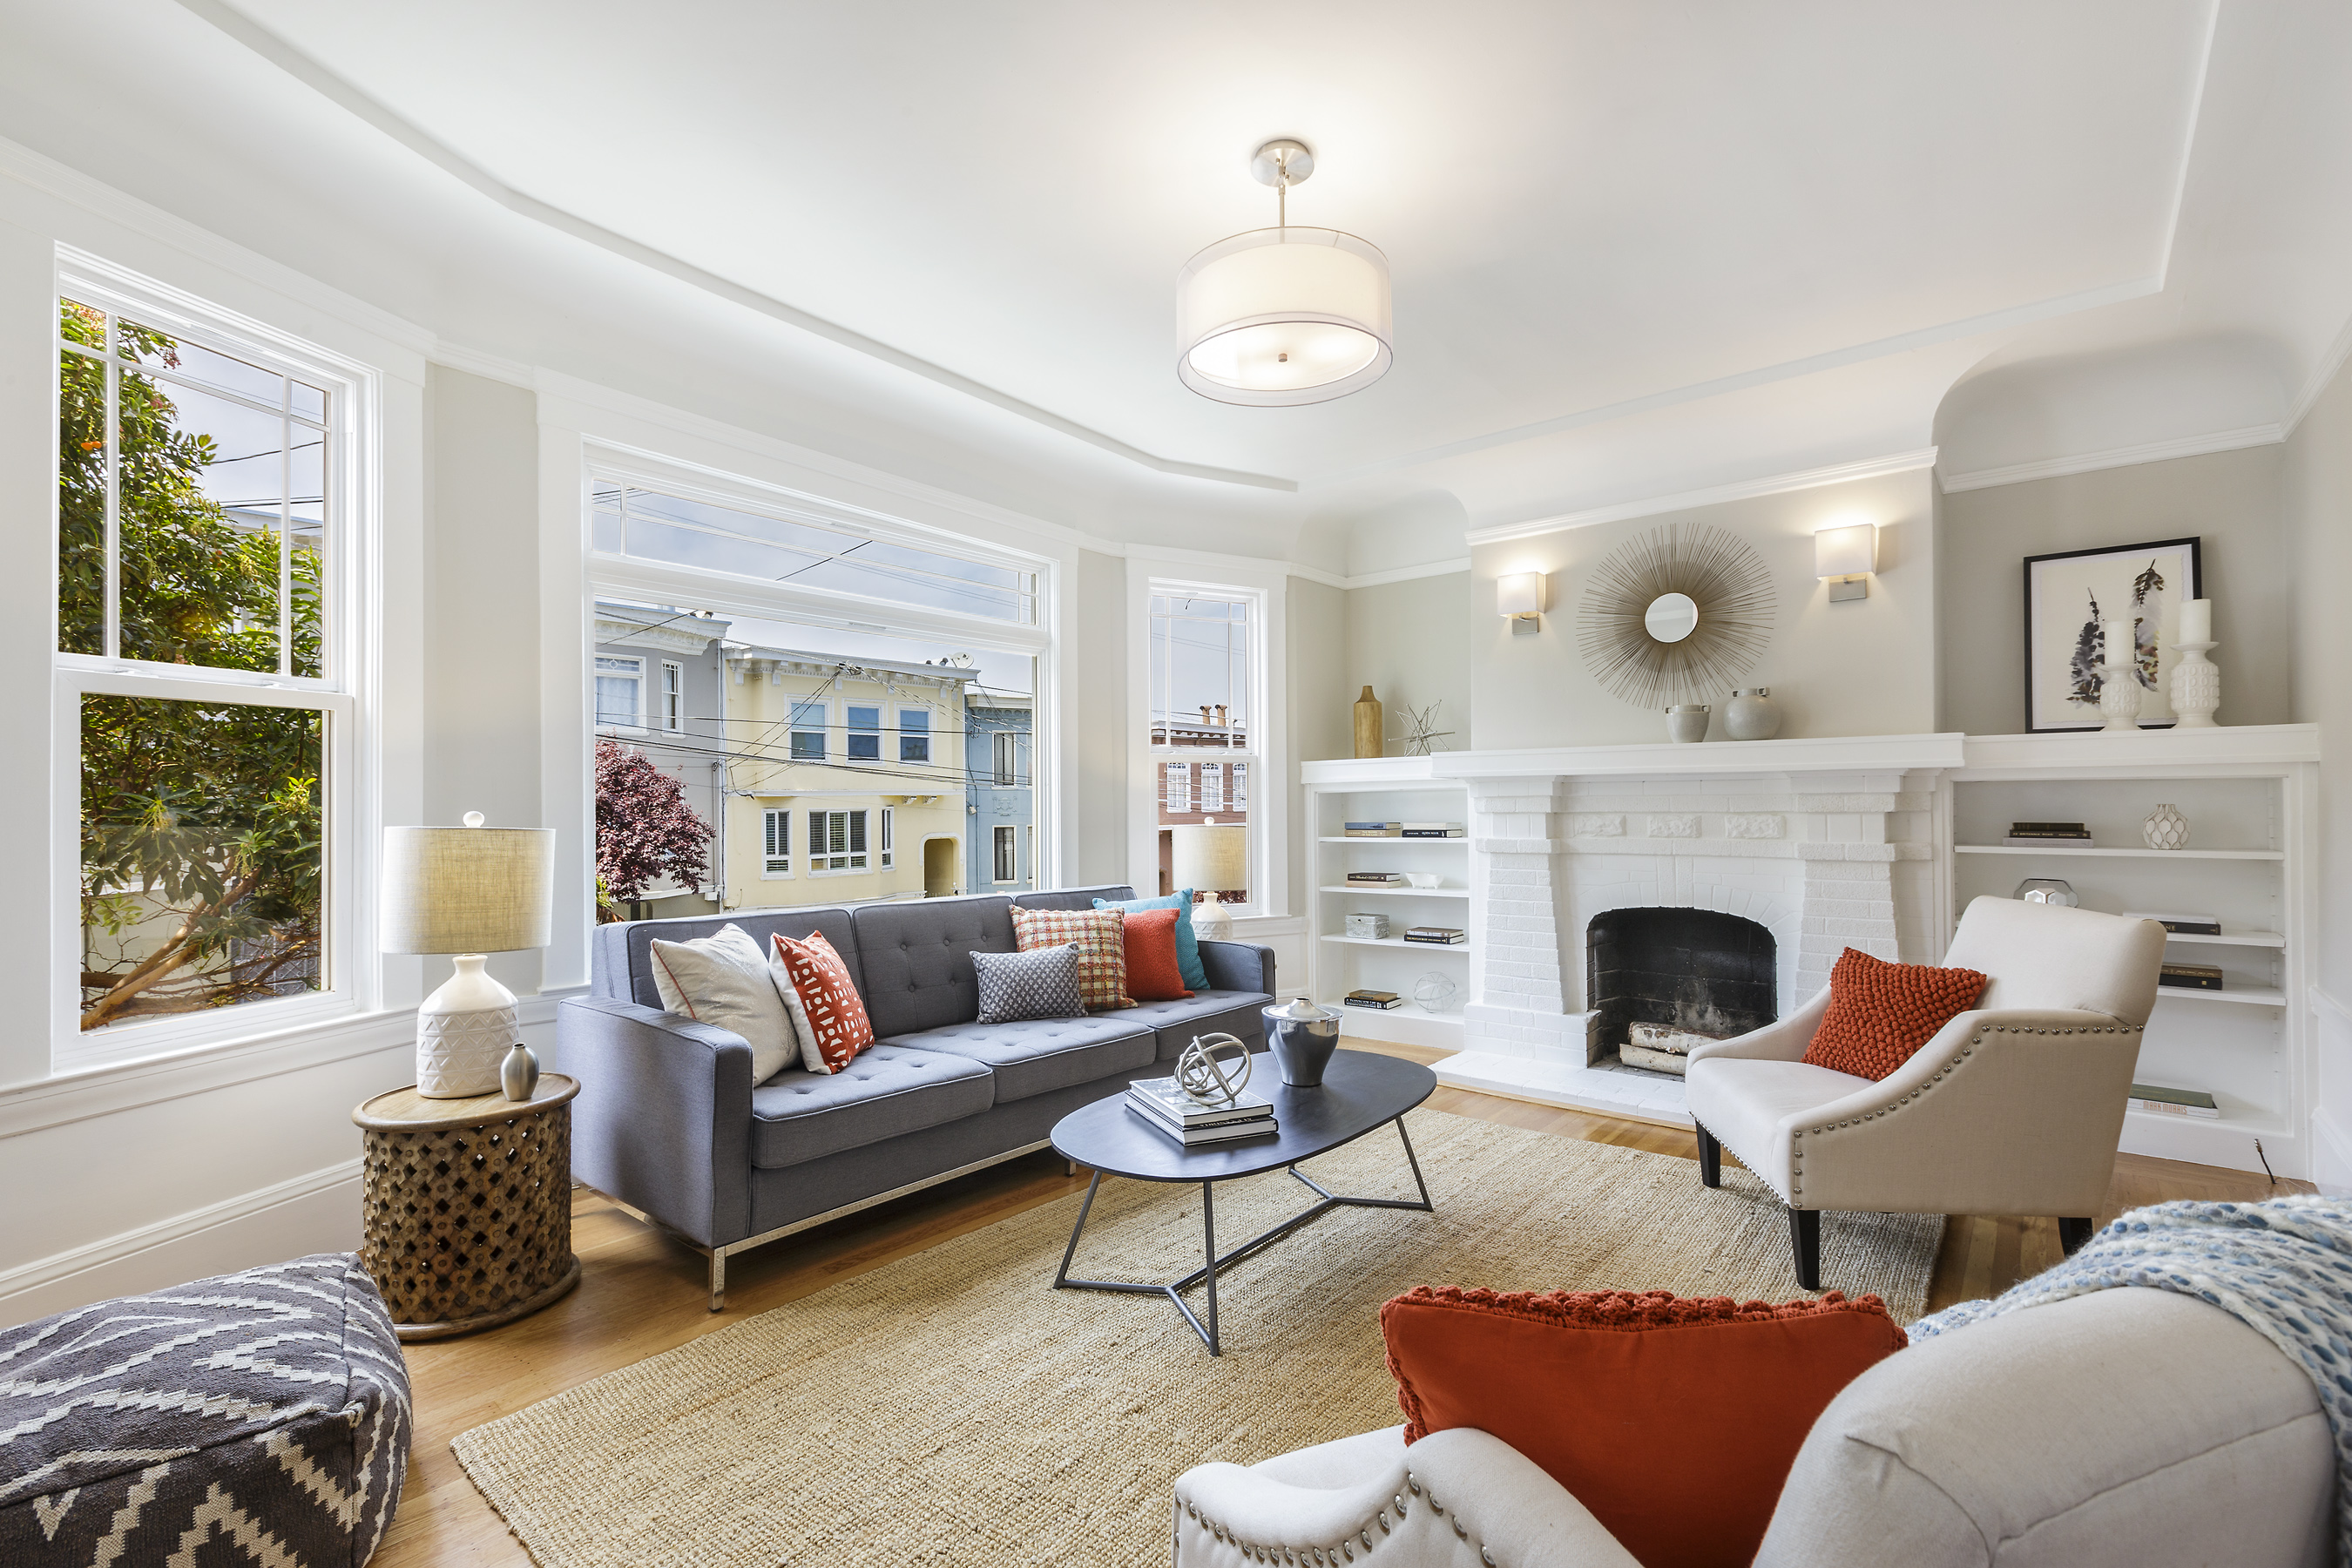 For Sale   754 18th Ave   Central Richmond Edwardian   $1,095,000